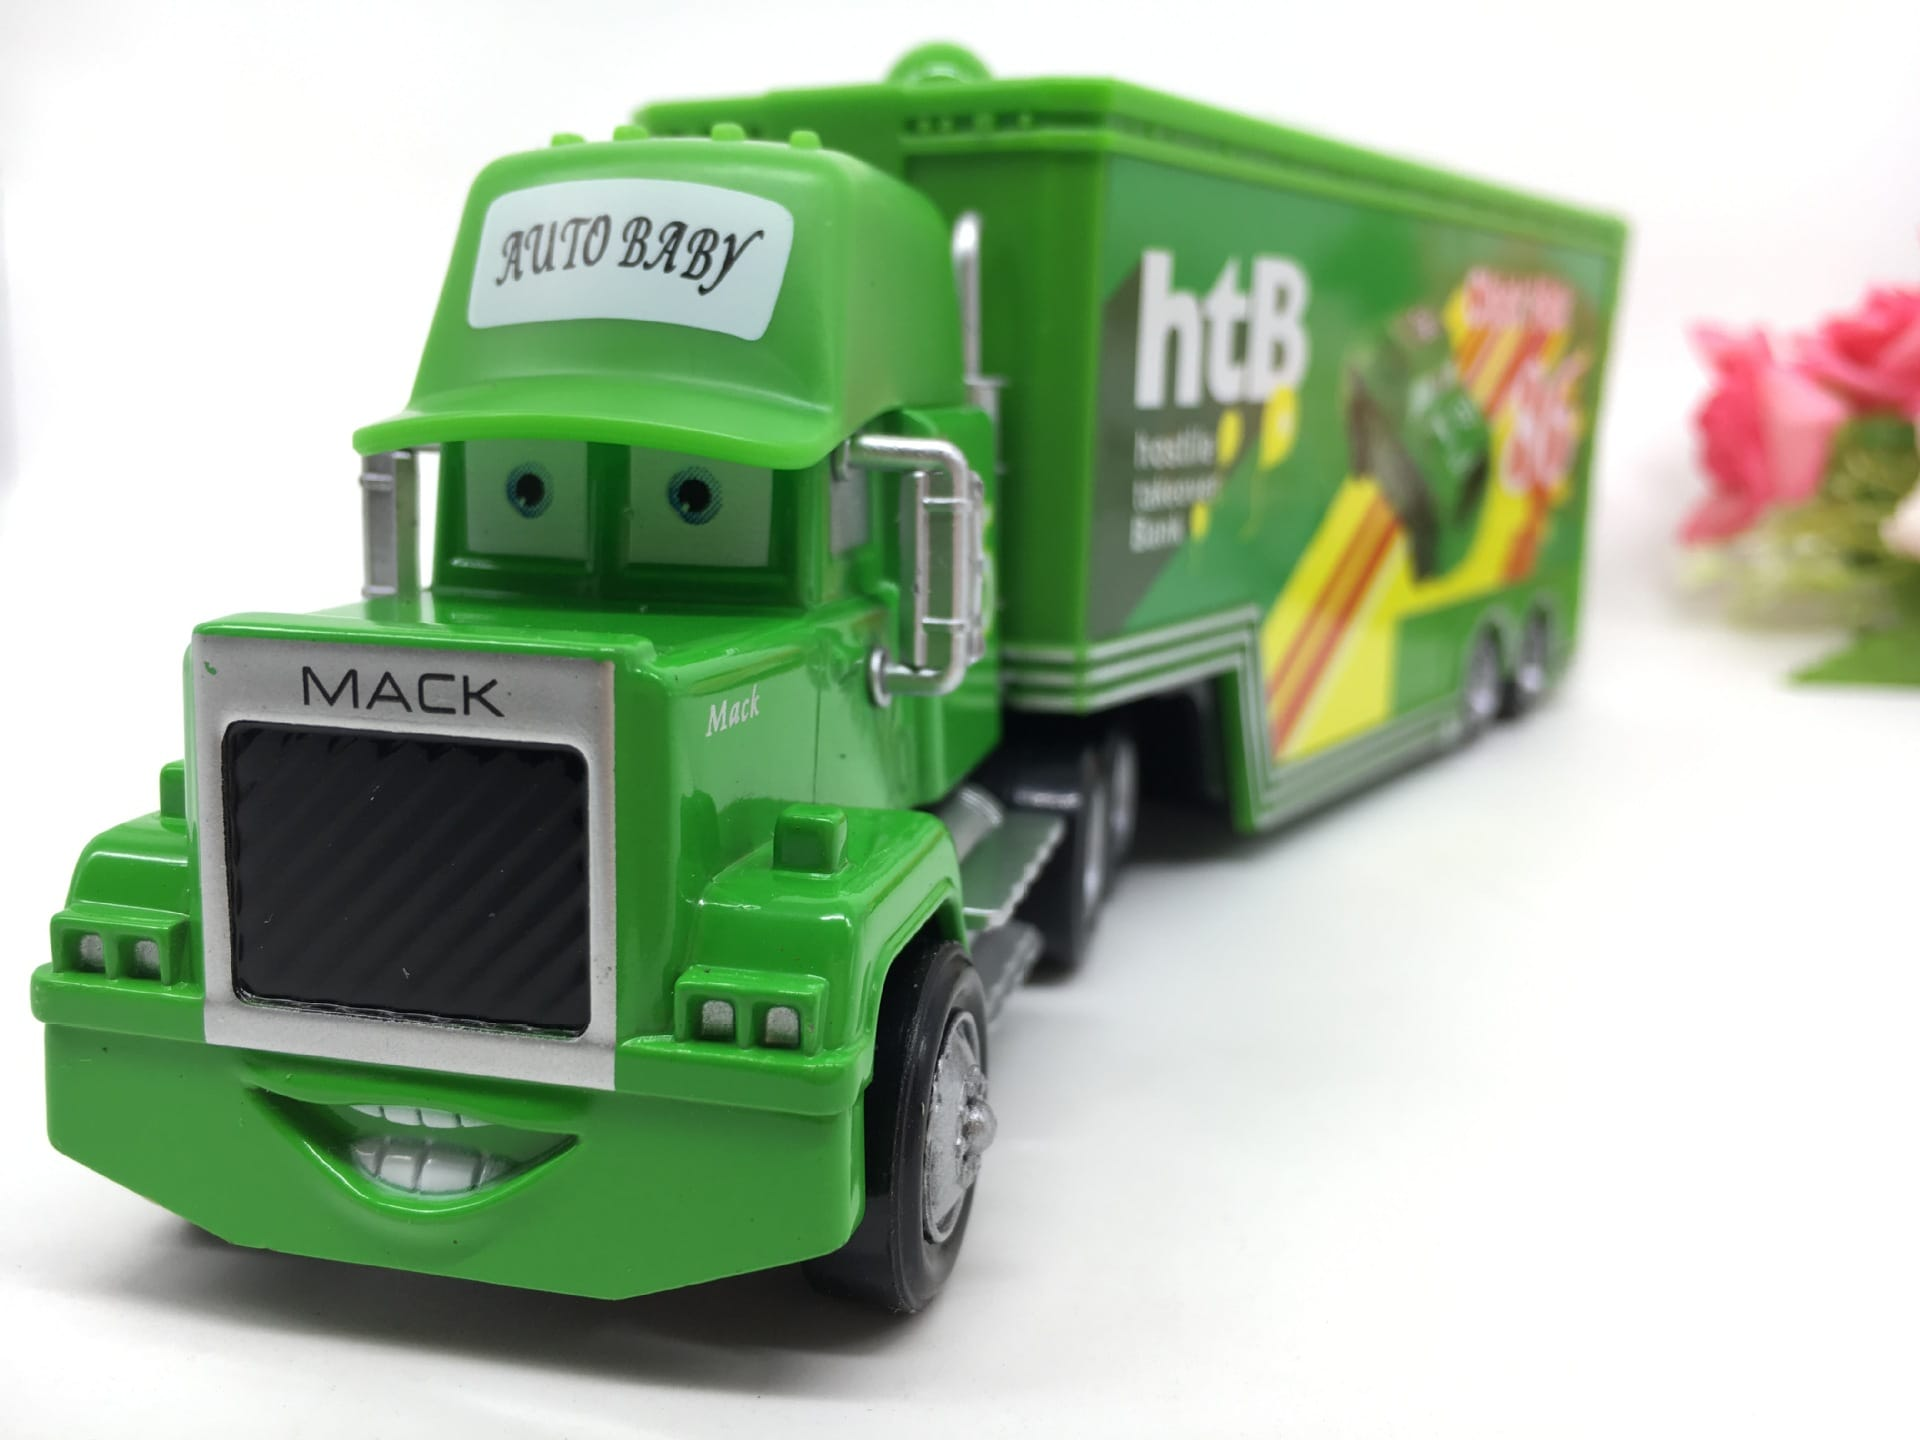 Disney Pixar Cars Toy Mack Truck Playset, Chick Hick (Auto Baby)